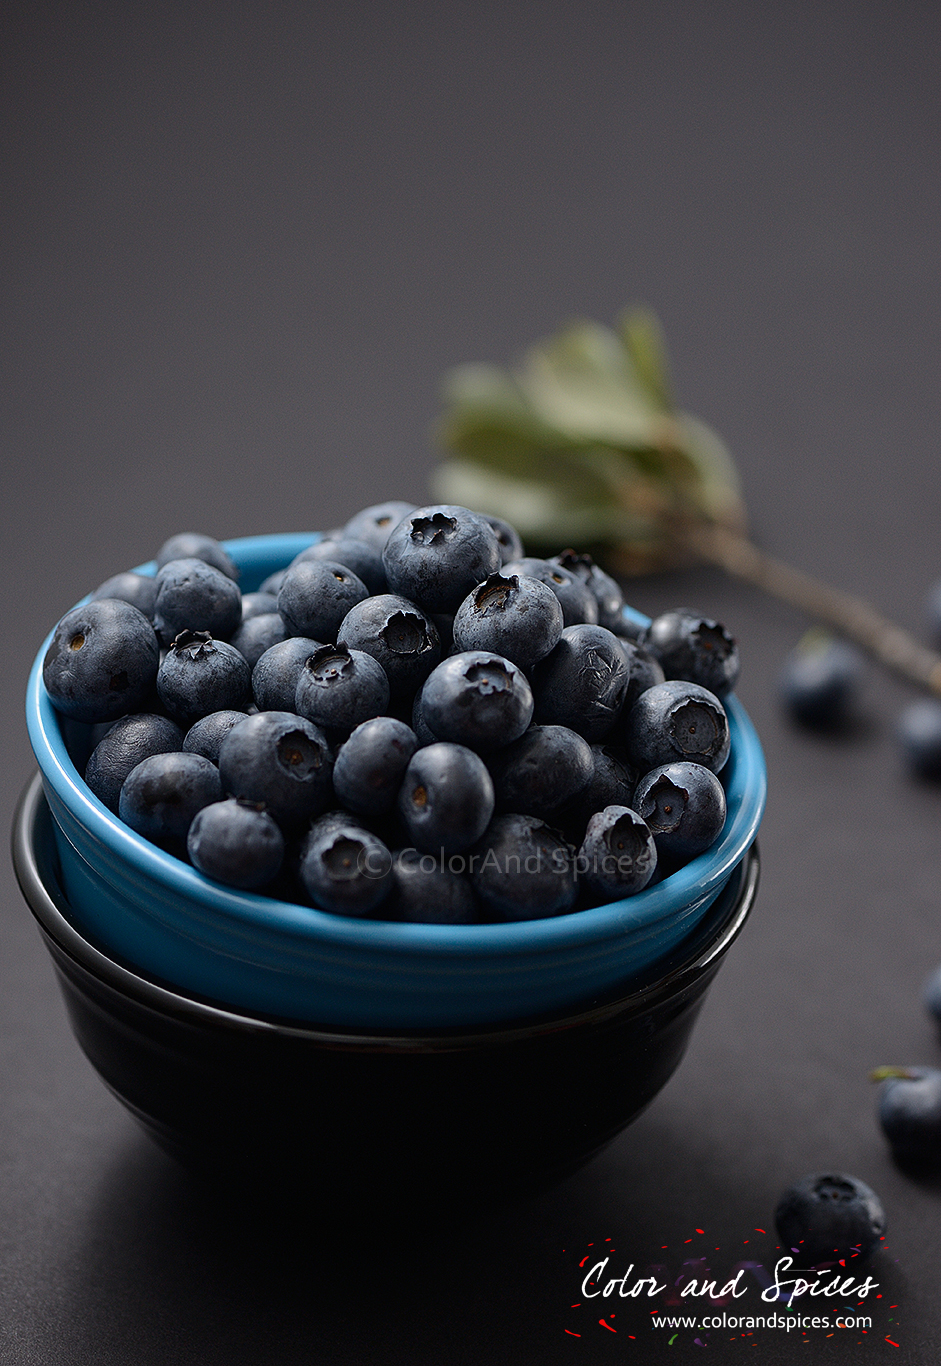 Color and Spices: Blueberry cake